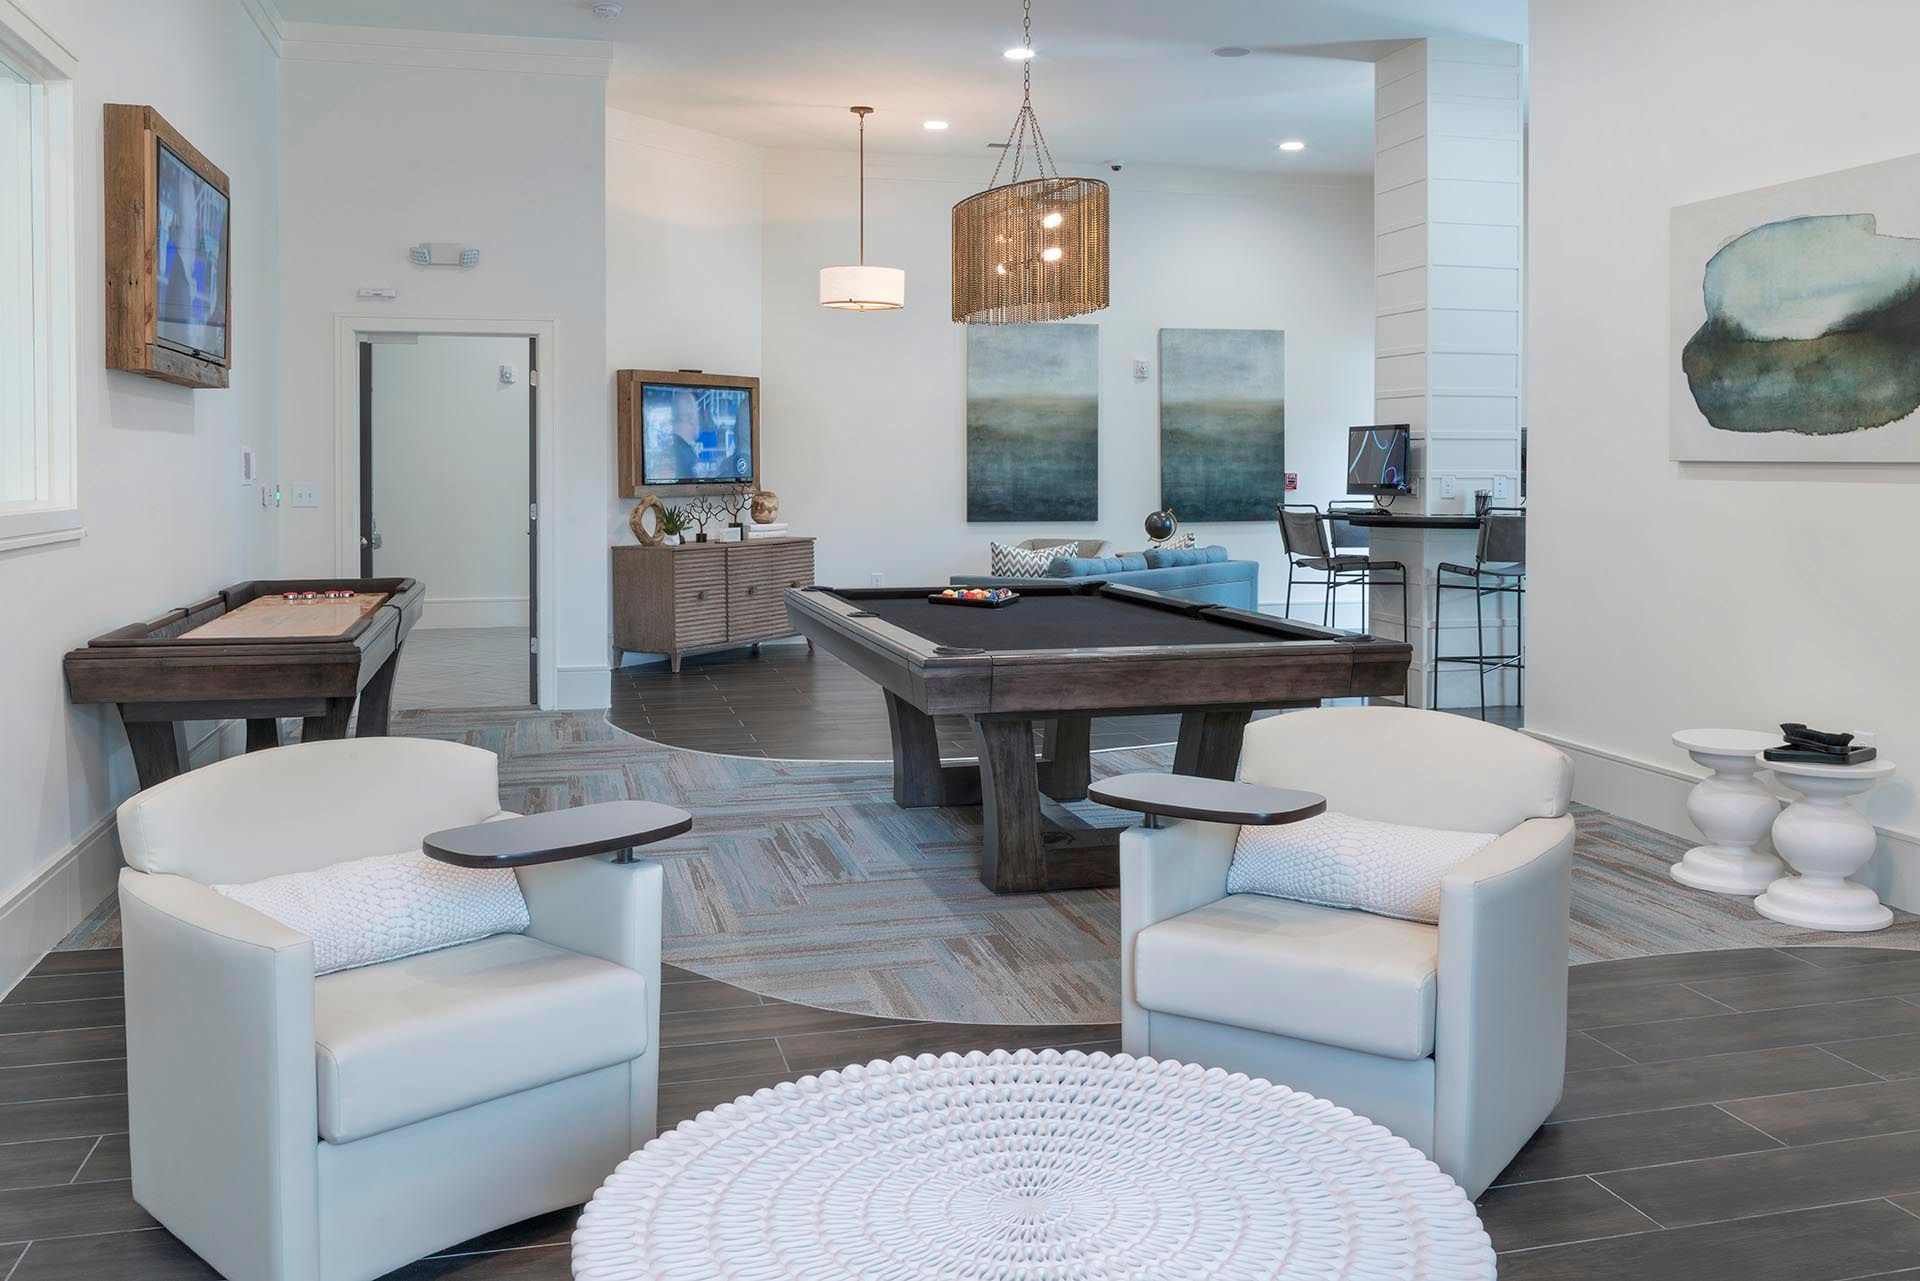 Lounge area with pool table and shuffleboard